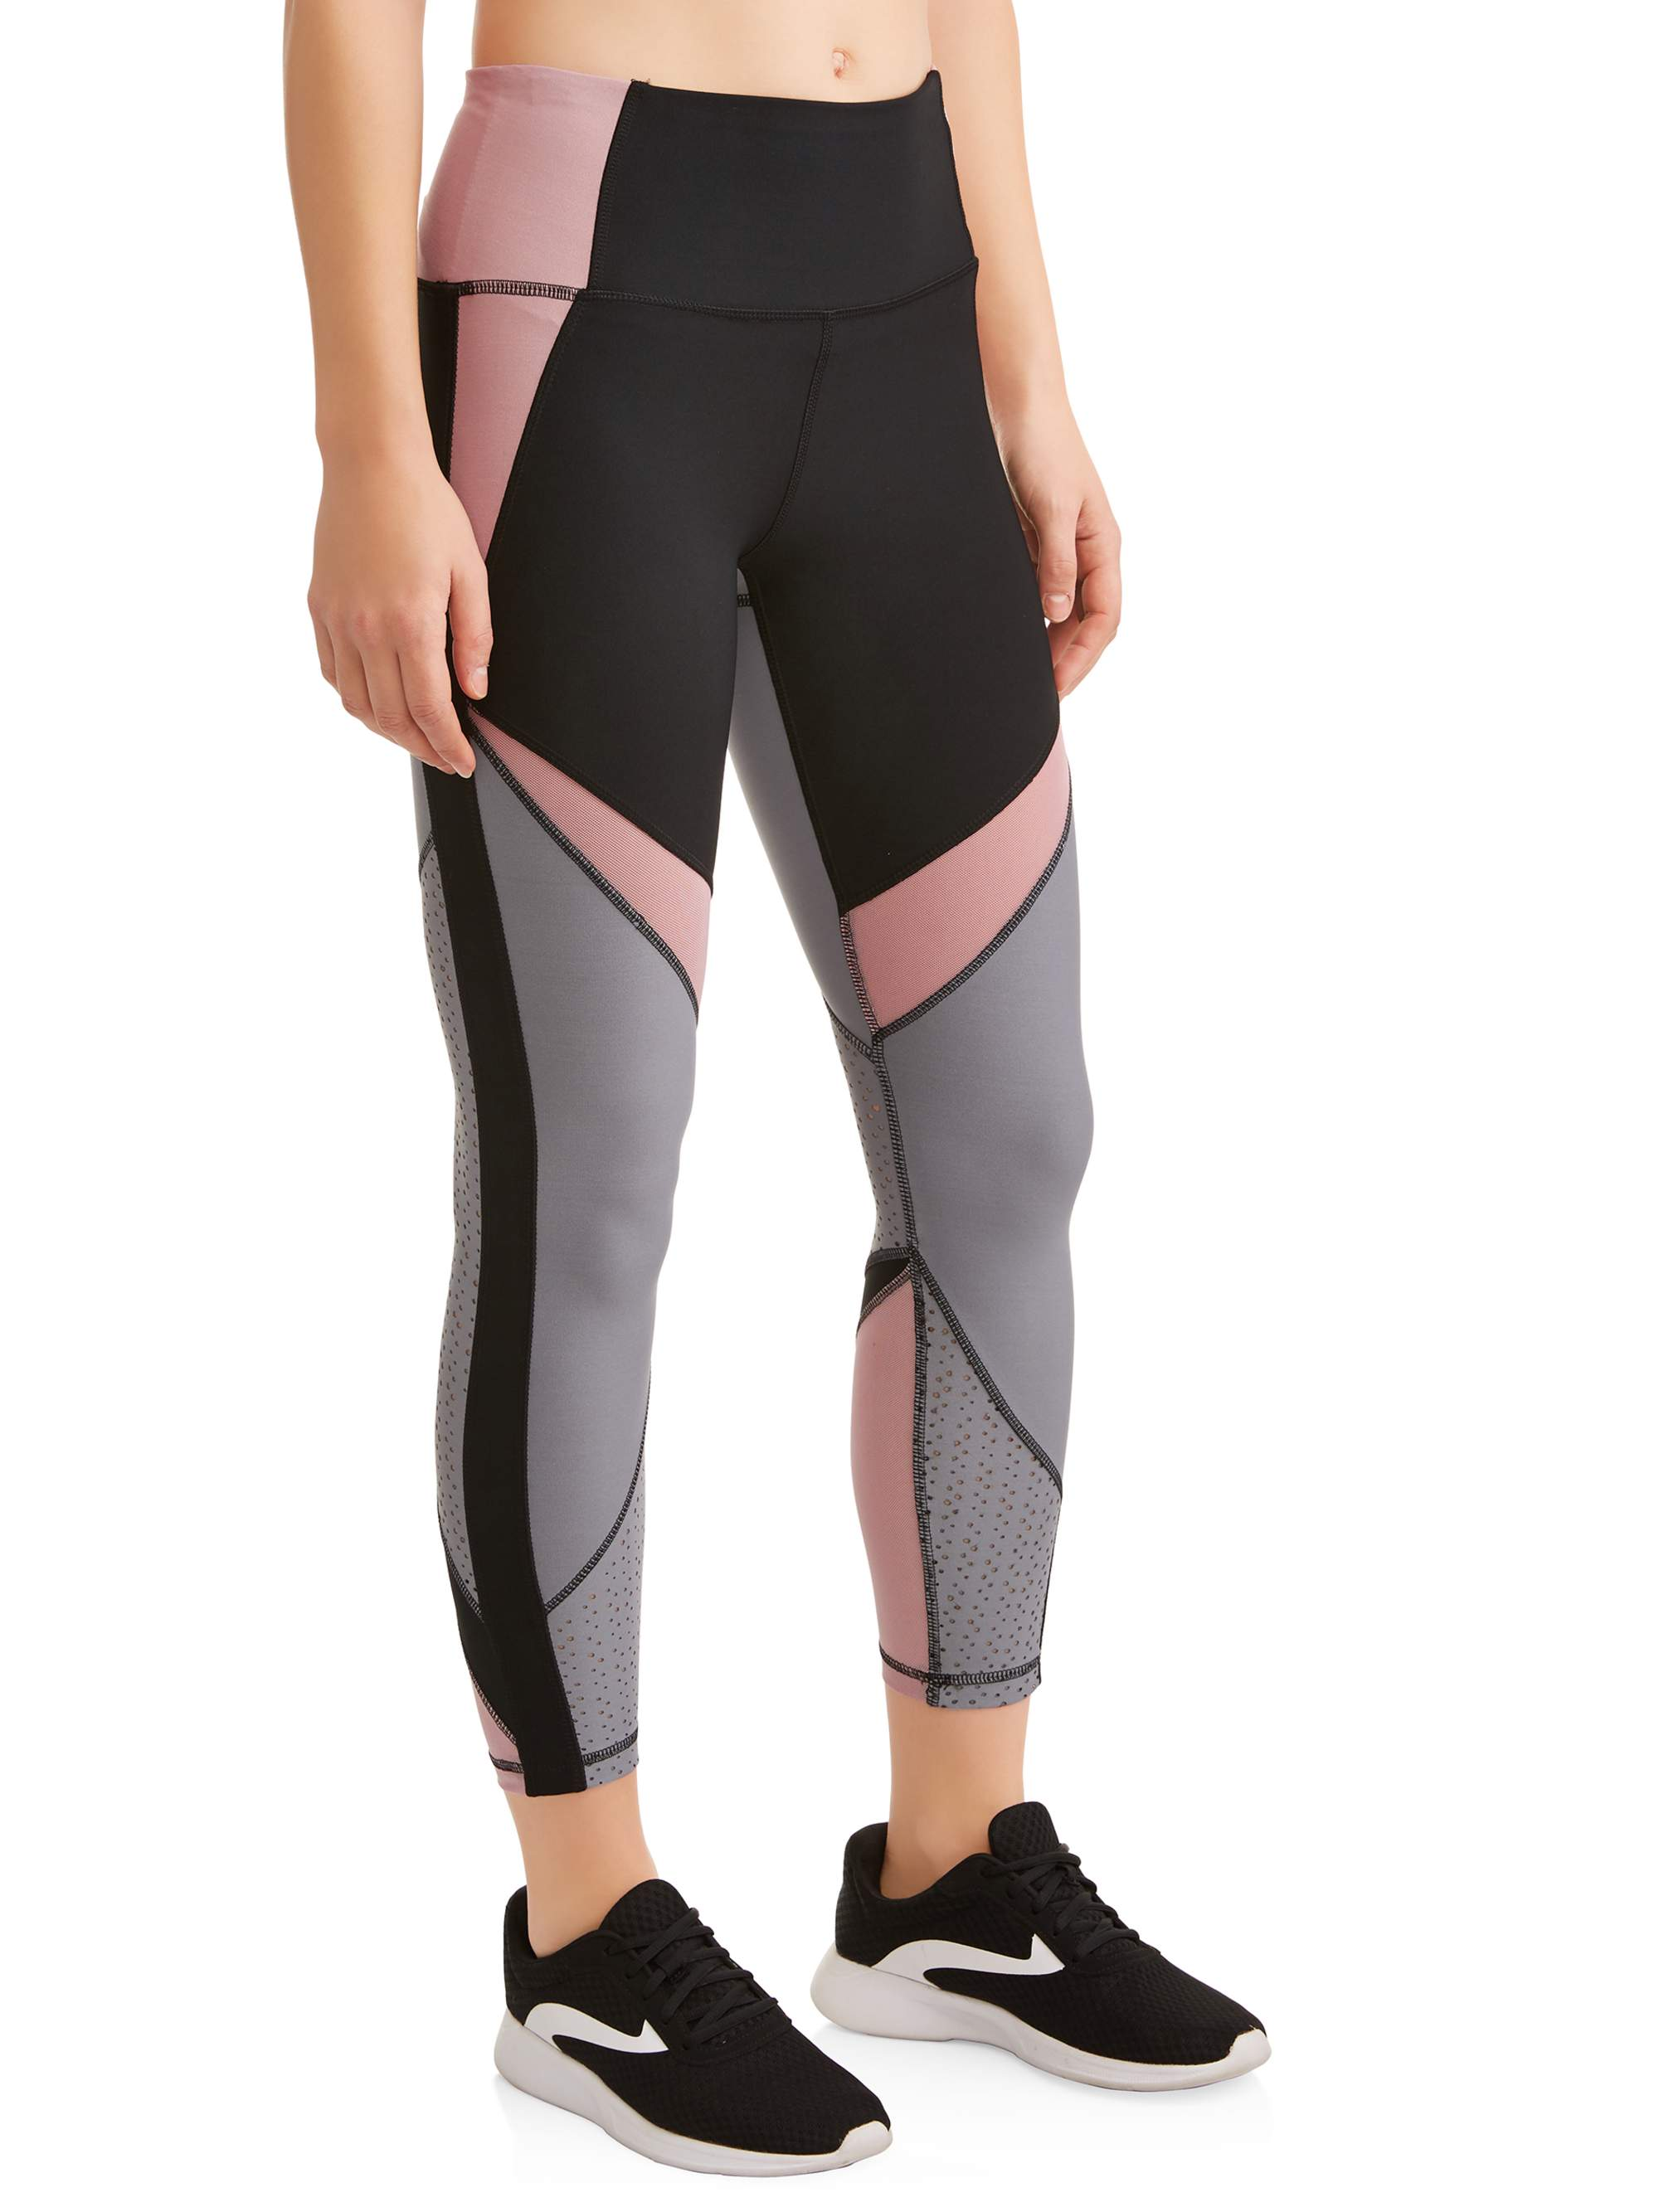 Women's Active 7/8 Ankle Legging